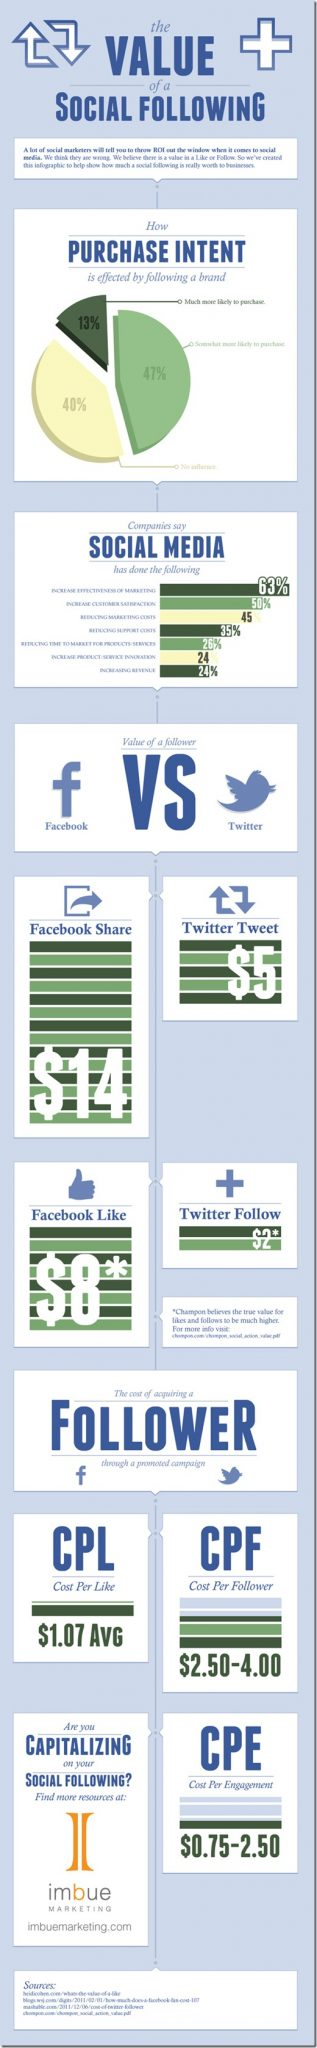 337984-social-media-value-infographic